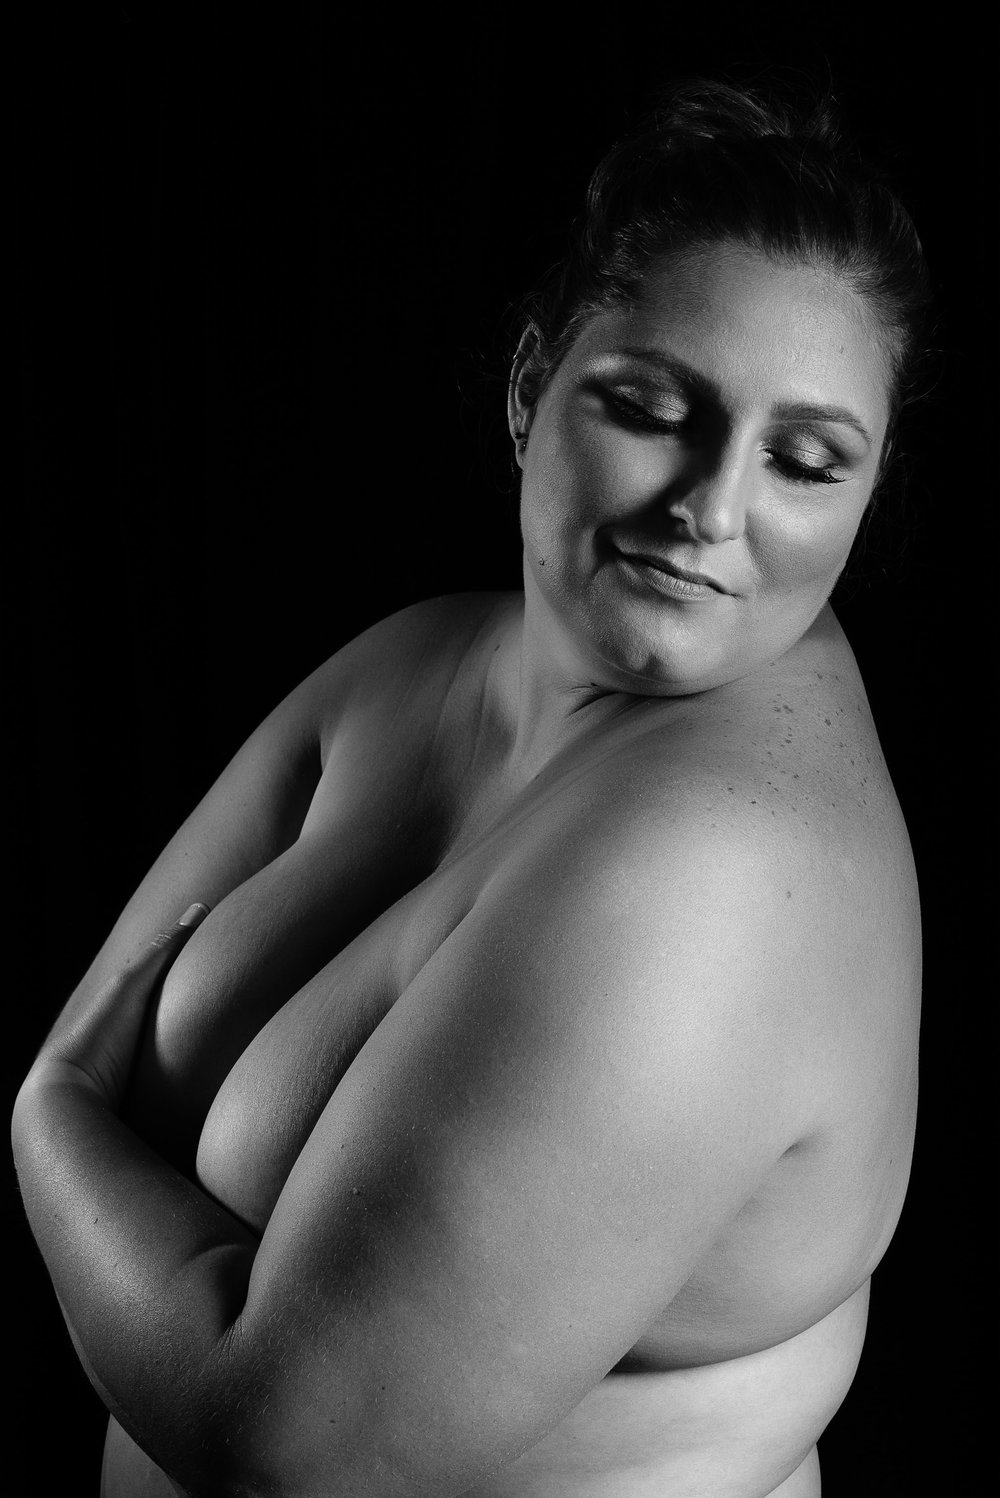 Curvy woman in black and white nude art photography